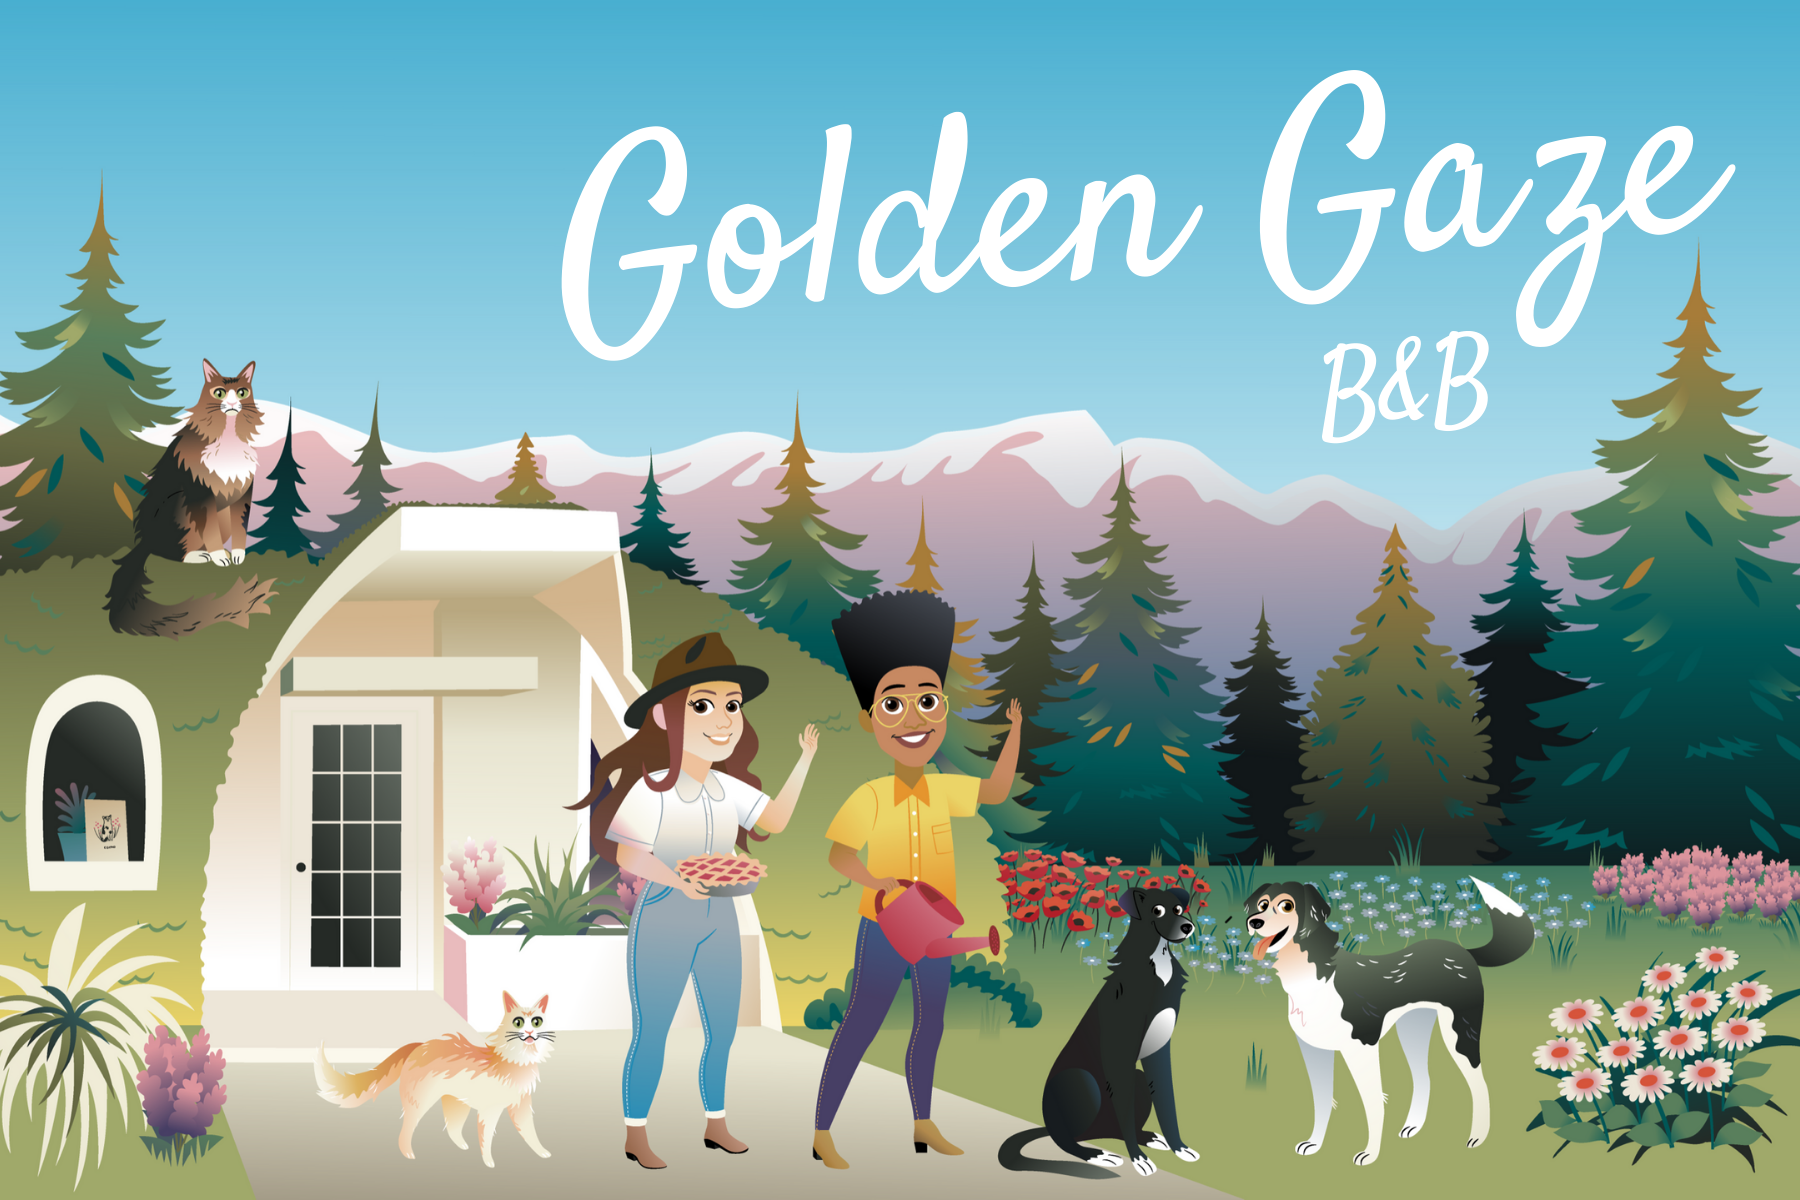 Artists rendition of the Golden Gaze B&B, showing Katie and Reigh waving, with two dogs and a cat outside a house. There are mountains and trees in the background.